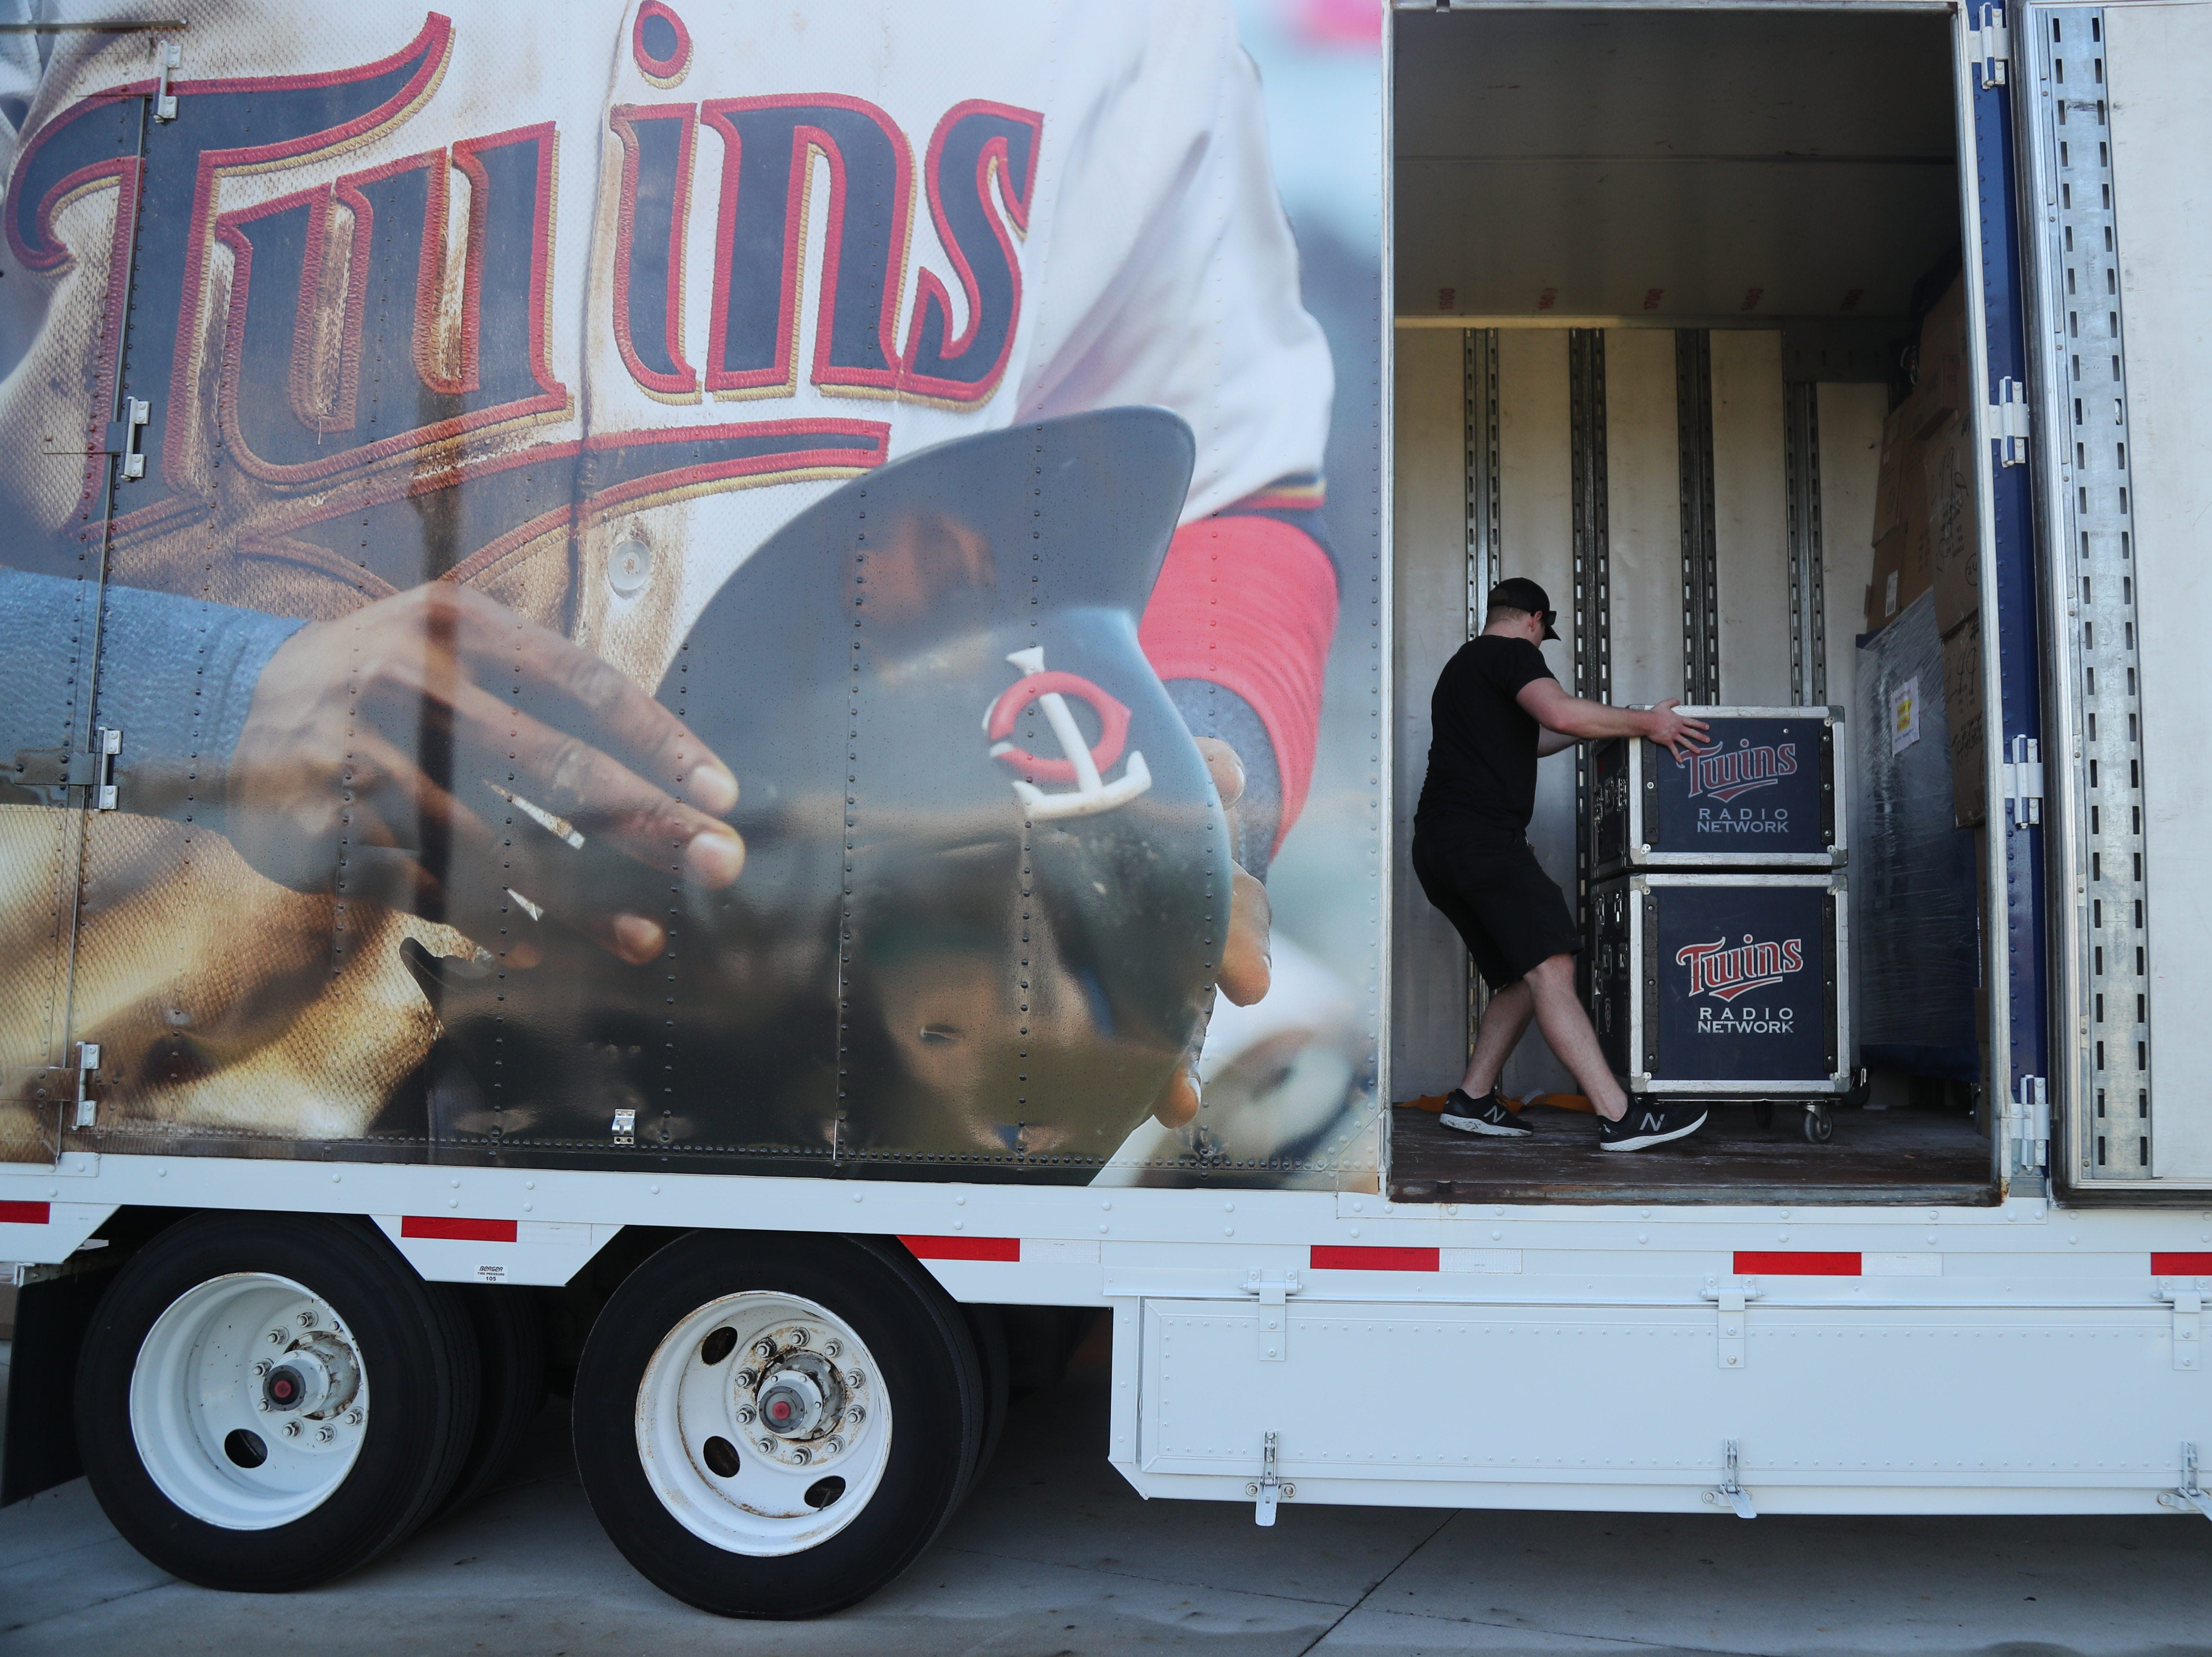 The Minnesota Twins truck arrived on Friday morning, Feb. 8, 2019, at the Century Link Sports Complex in Fort Myers. The first Spring Training practice for pitchers and catchers is on Wednesday.